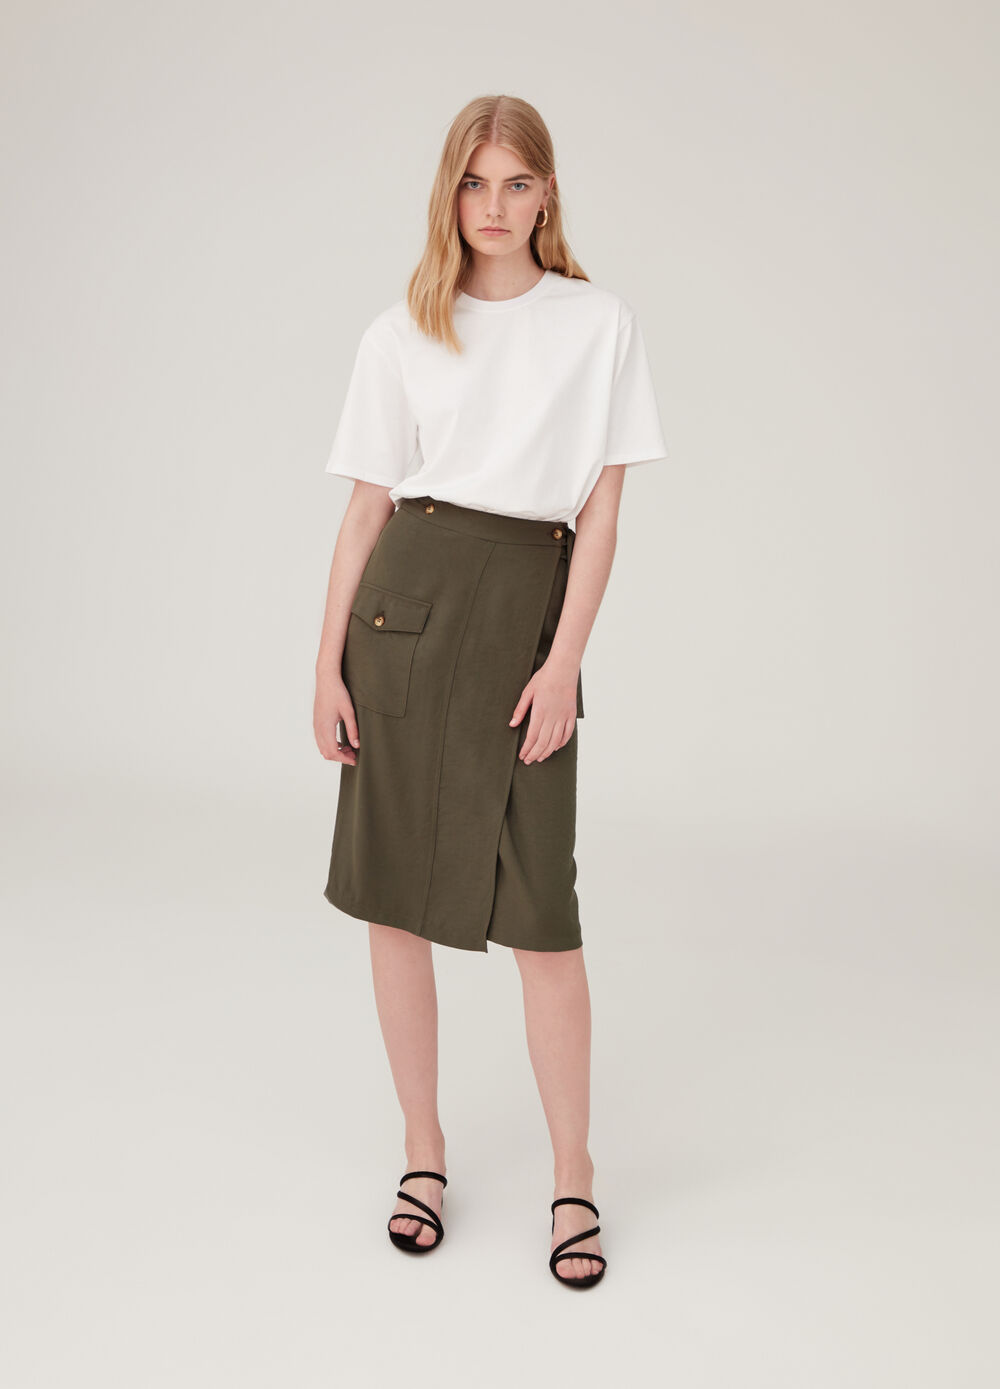 Solid colour wraparound skirt with pockets